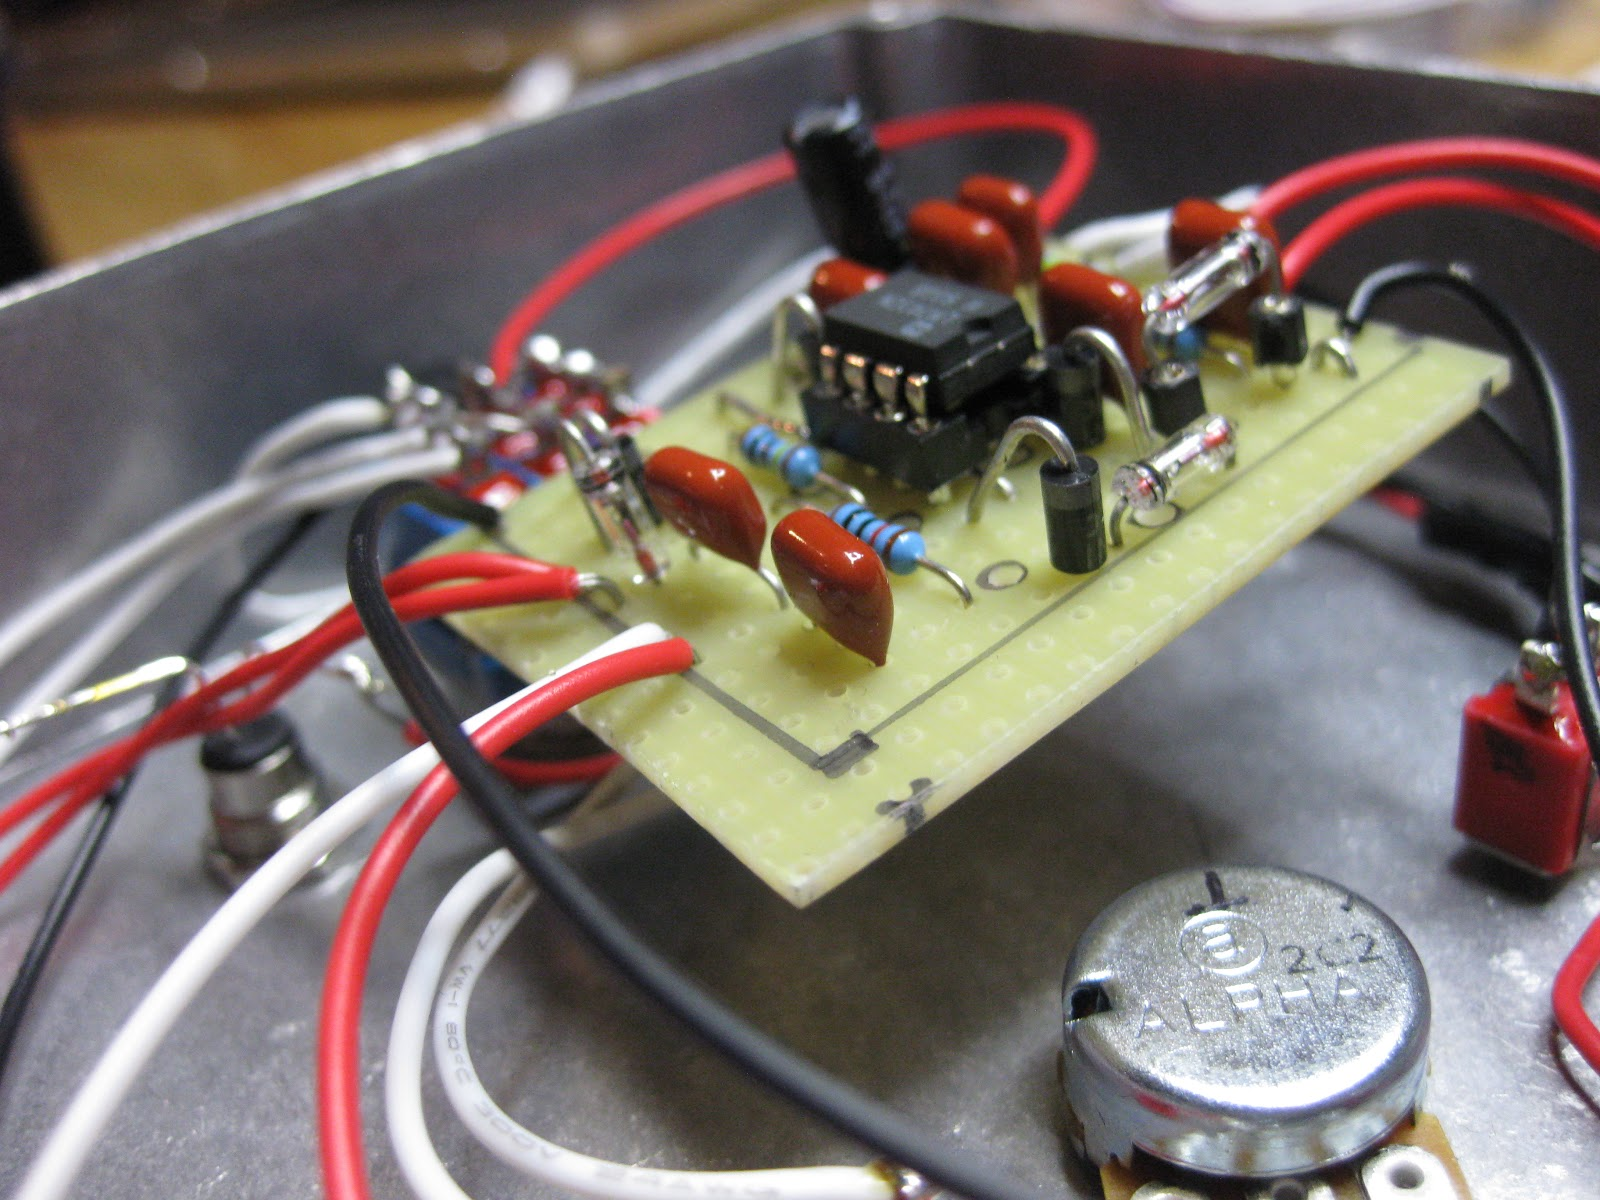 Diy Guitar Pedal Projects The Final Step Circuit Picture Sorry About Messy Wiring This Was A Hell Of First Project I Had Fun Throughout Whole Thing